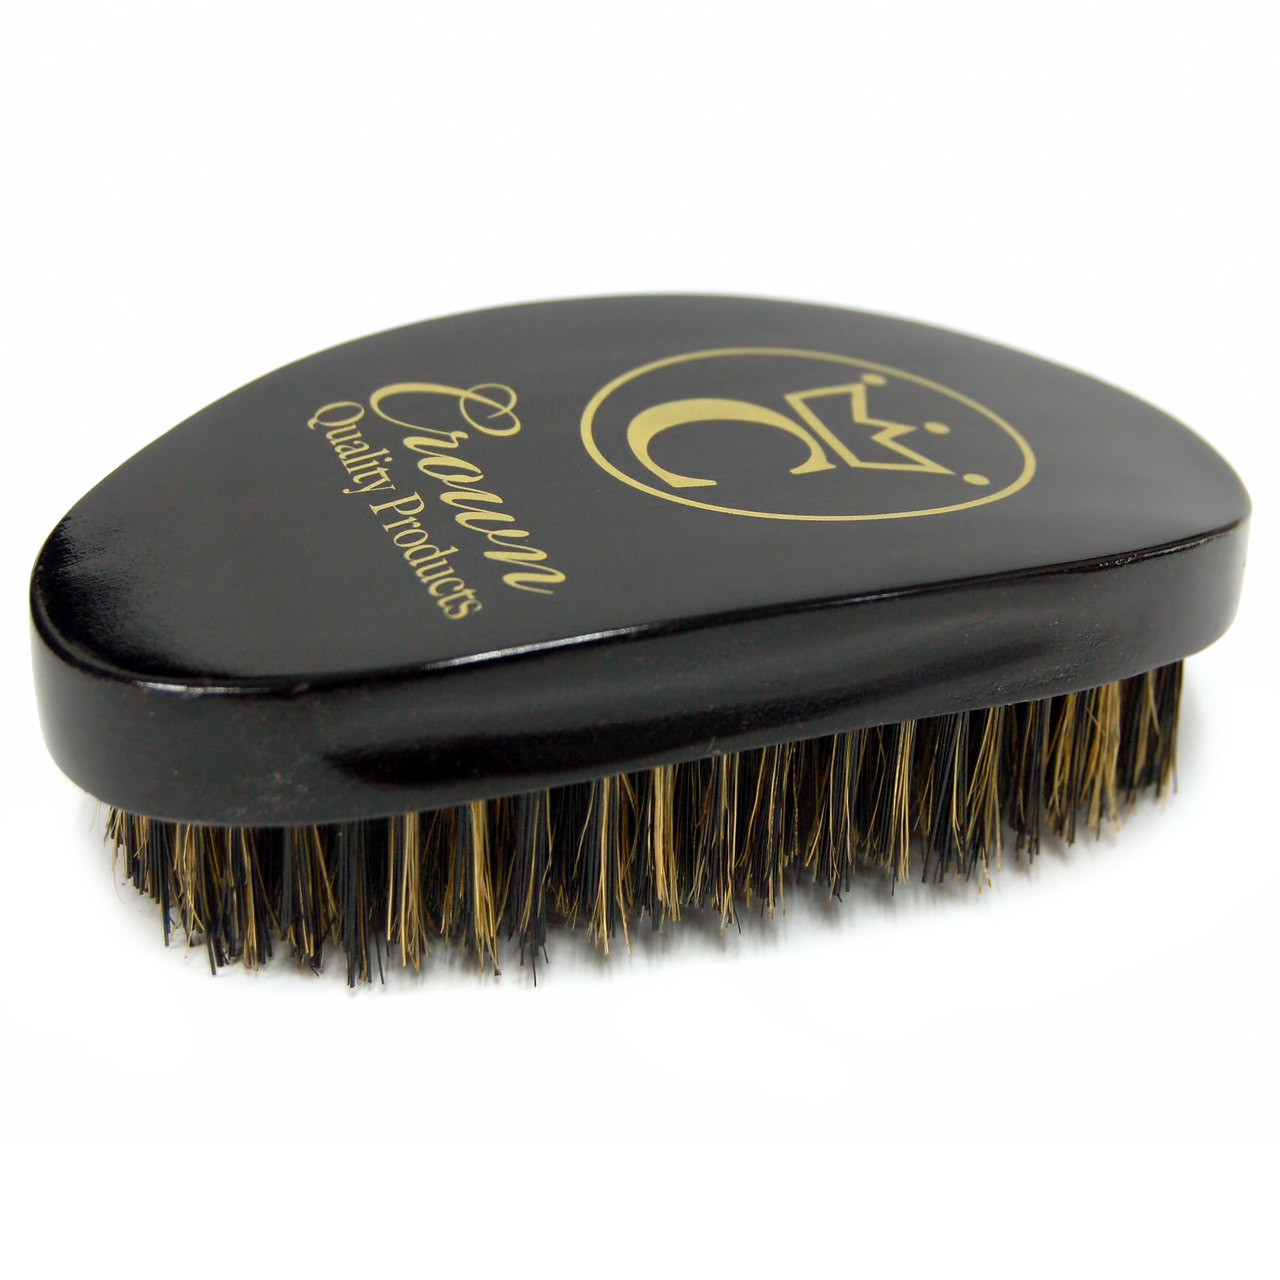 Crown 360 Gold Caesar Brush, Onyx Black - Medium Bristle